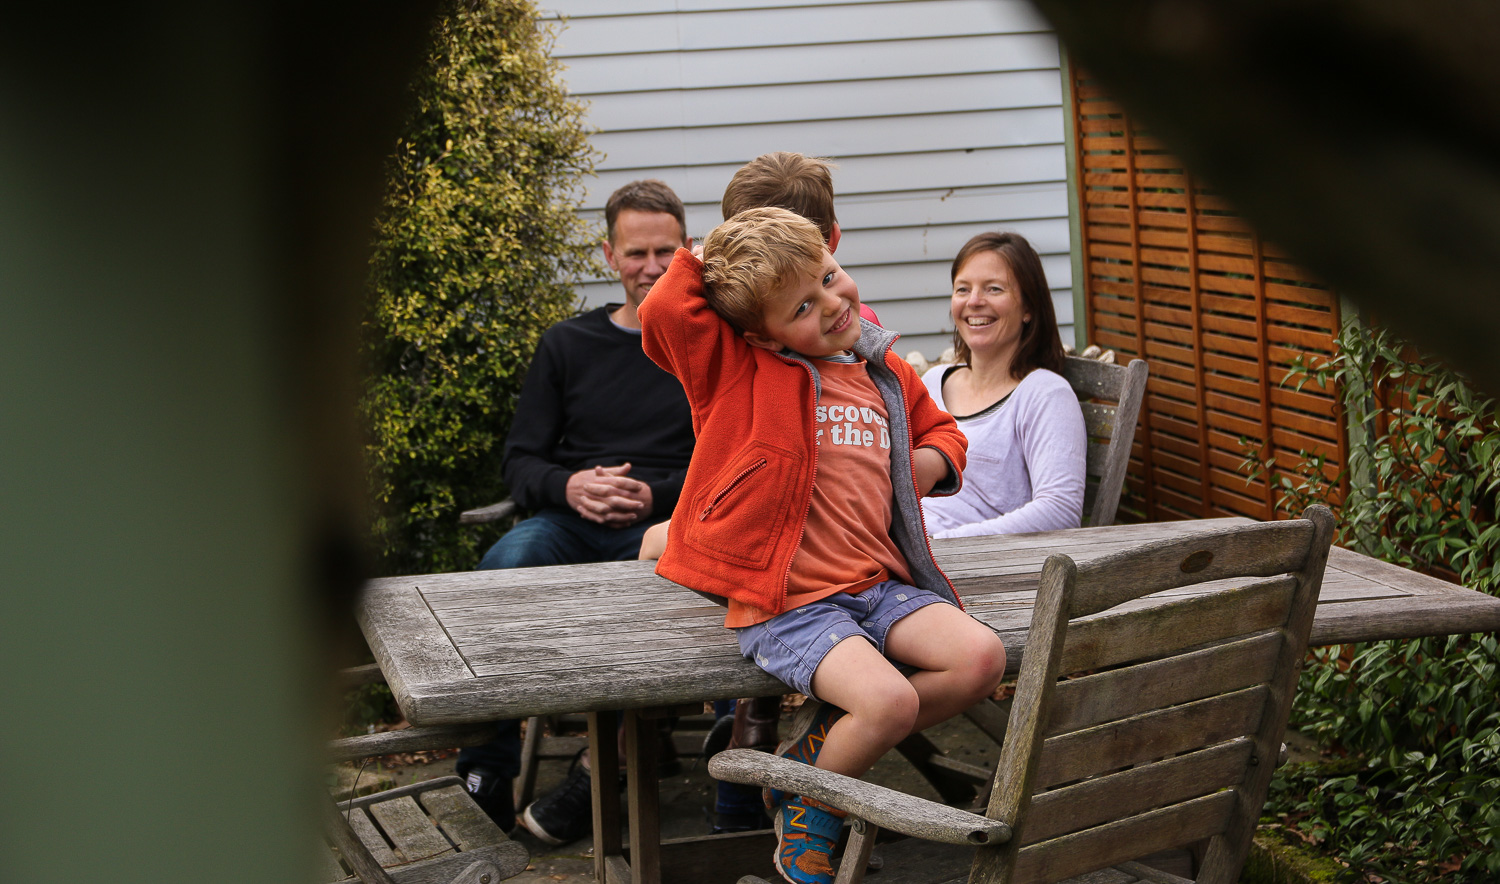 little-boy-wearing-orange-sitting-on-outside-table-pulling-funnny-face-family-in-background-laughing.jpg